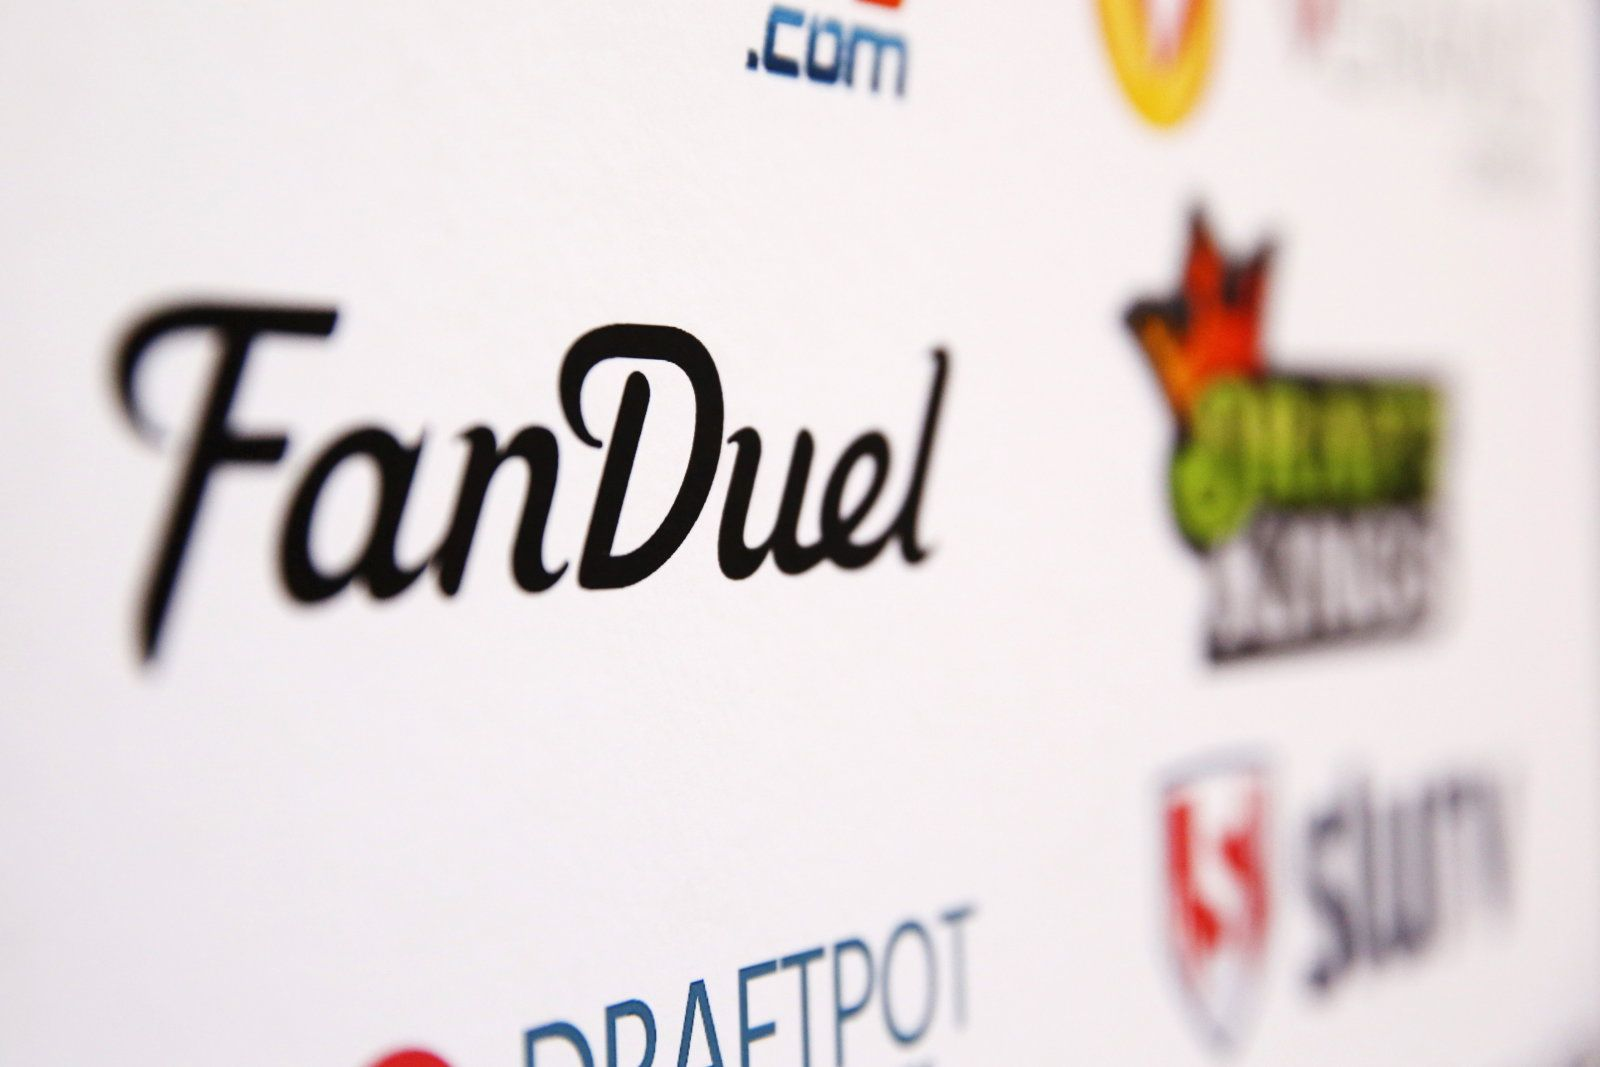 New York governor legalizes daily fantasy sports (With